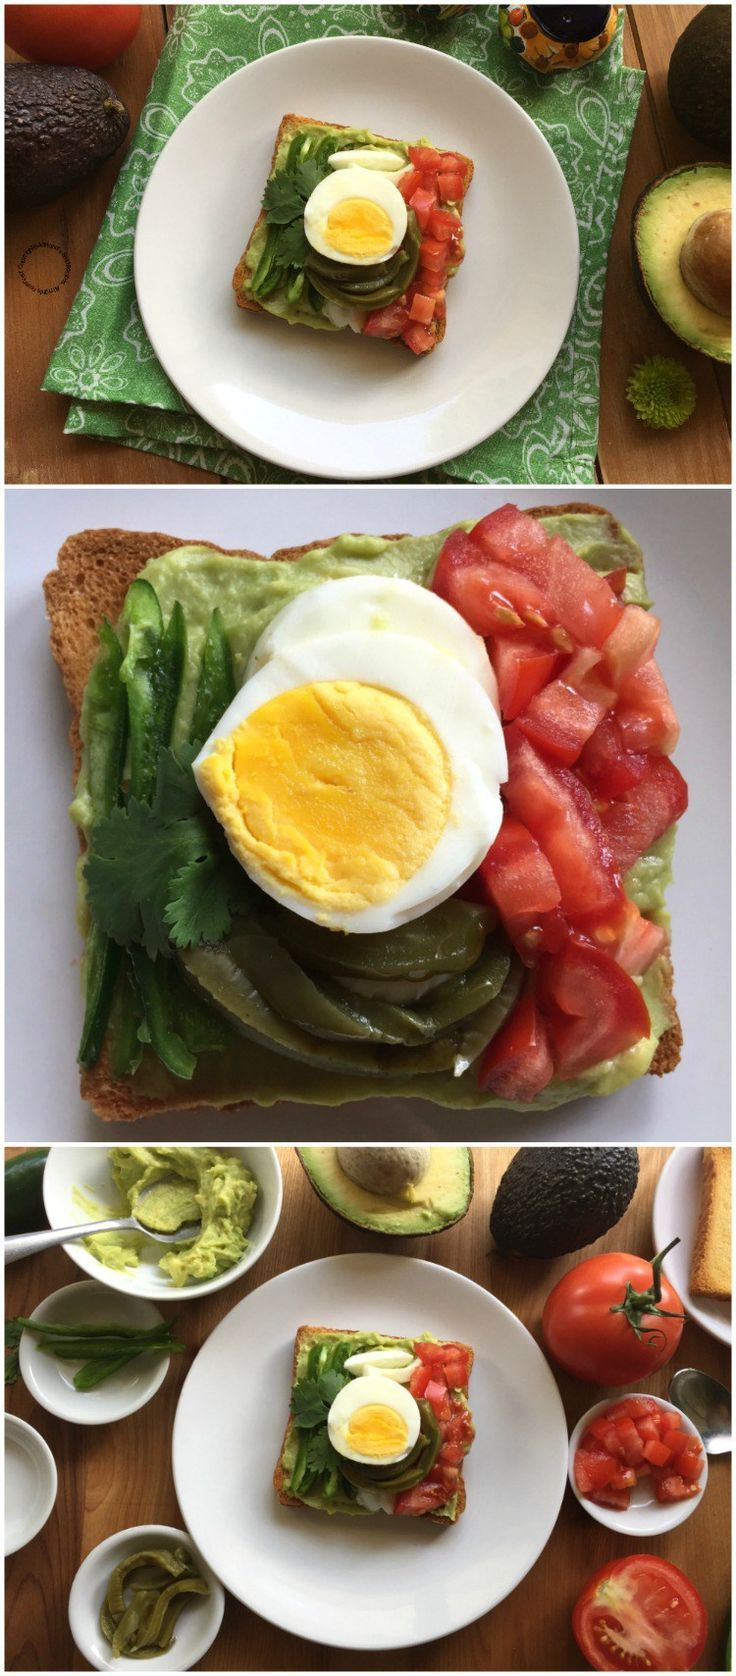 A Mexican Avocado Toast to celebrate Hispanic Heritage is the perfect bite to start the day with a yummy breakfast or to enjoy for a quick lunch or after working out